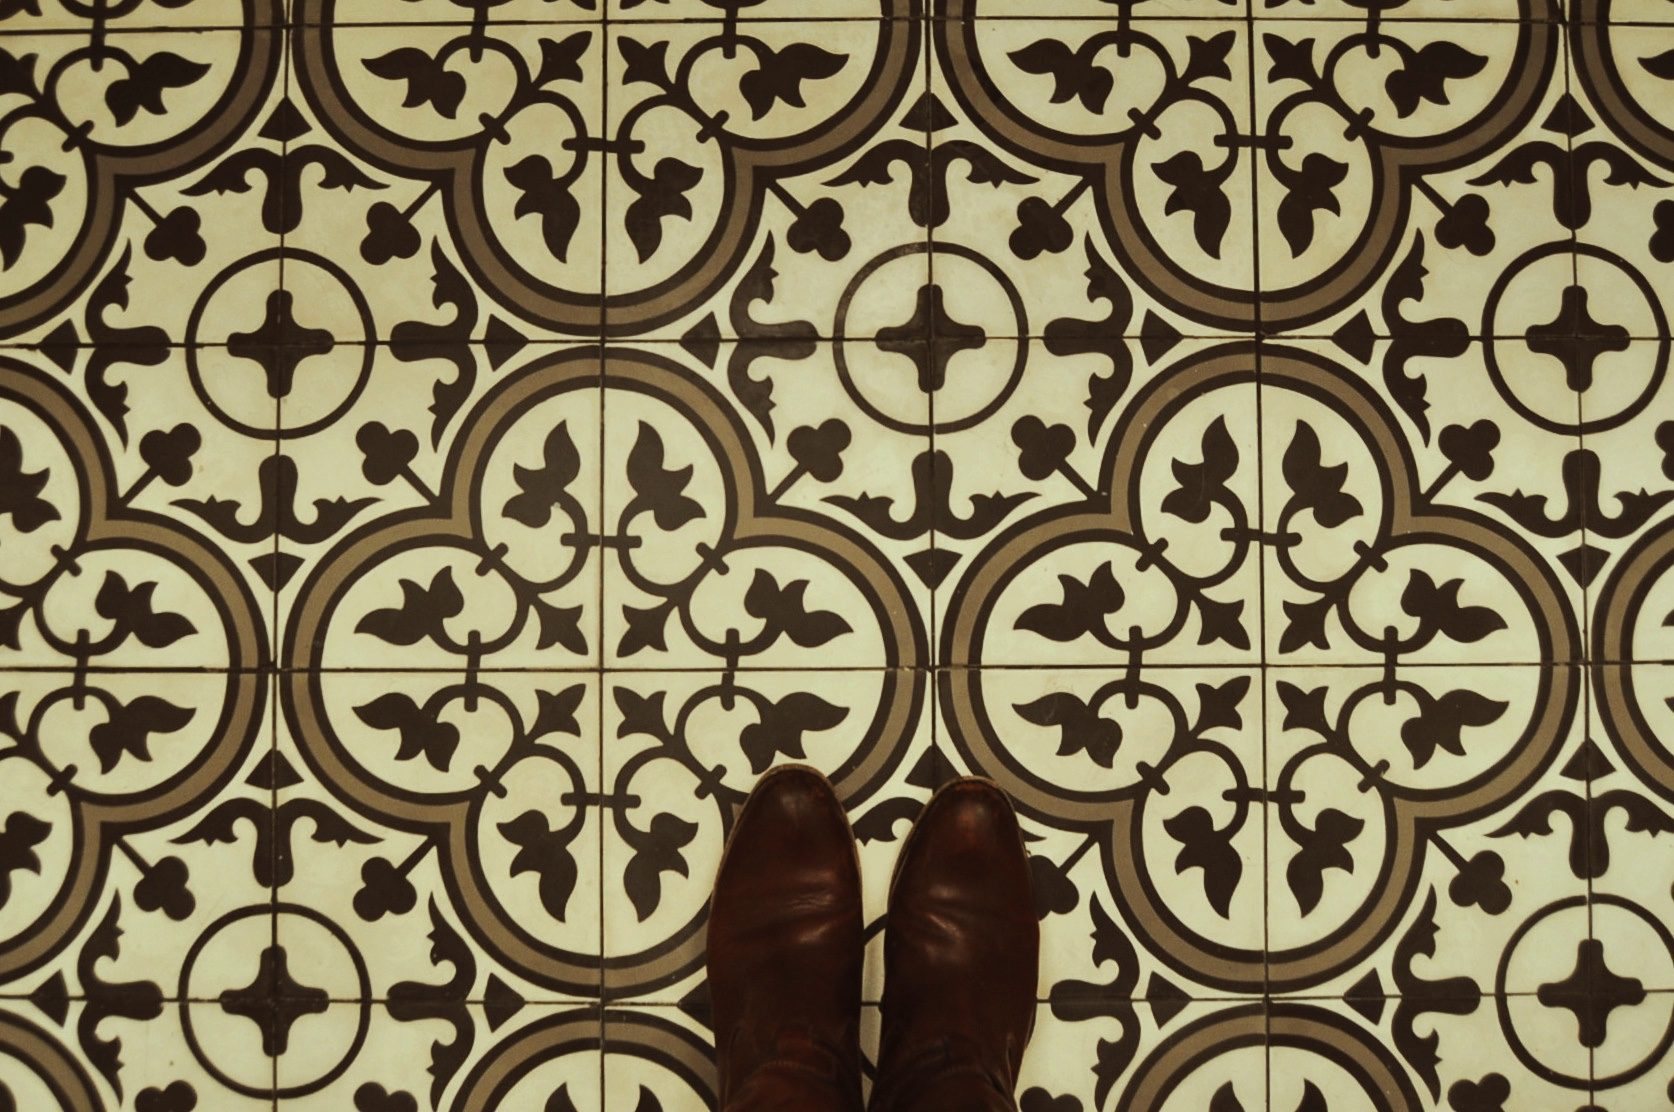 Cement tiles on the floor